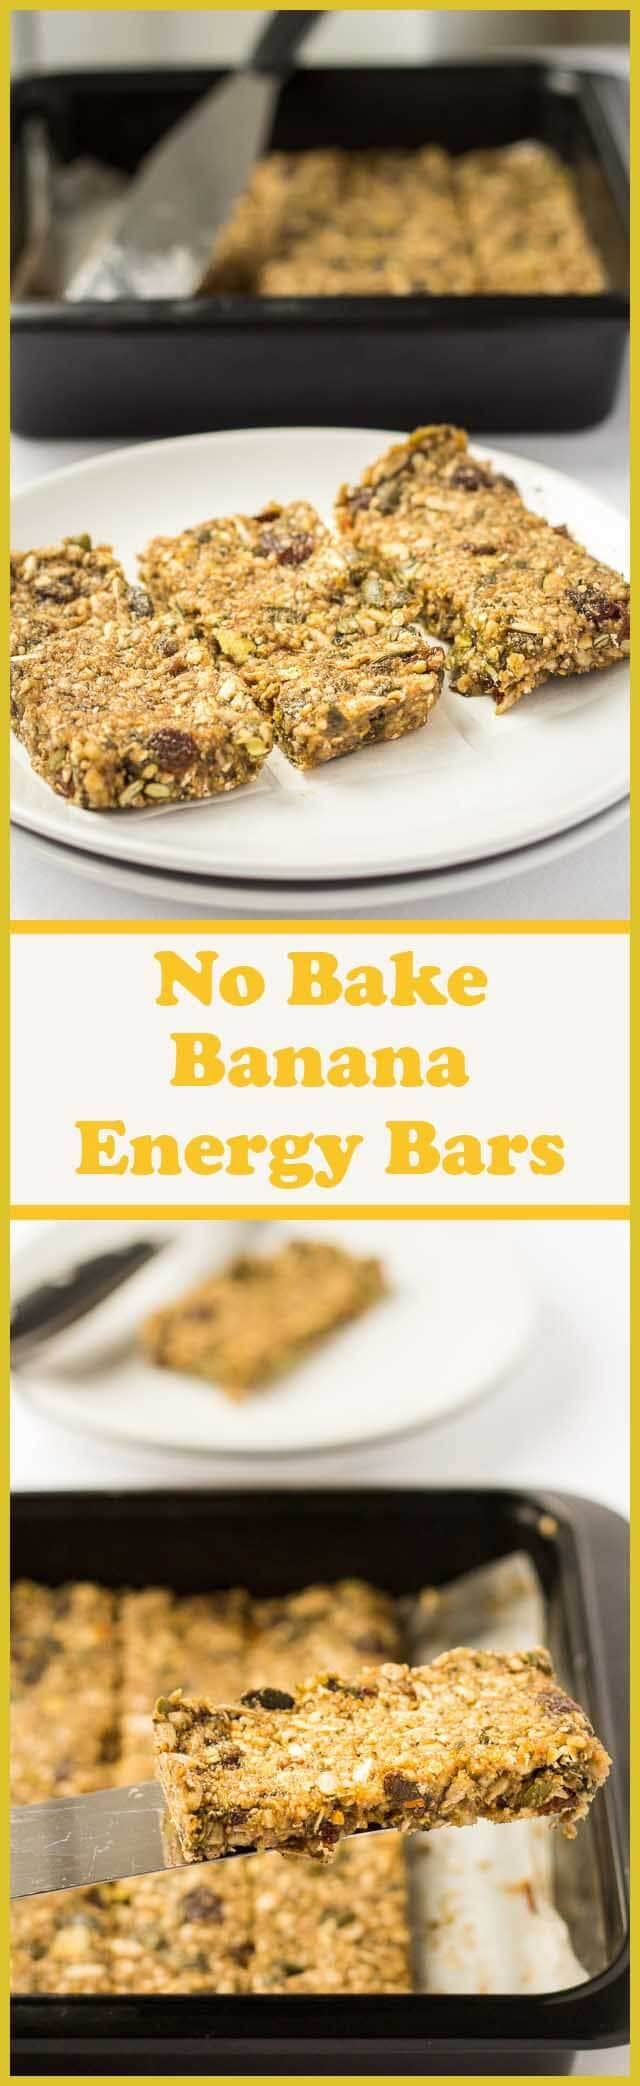 These no bake banana energy bars make a fantastic tasty snack that will help boost your energy levels and keep you fuller for longer. Stuffed full of healthy fruits, seeds and nuts, they're refined sugar free and only 259 calories each making them perfect healthy pick me up!